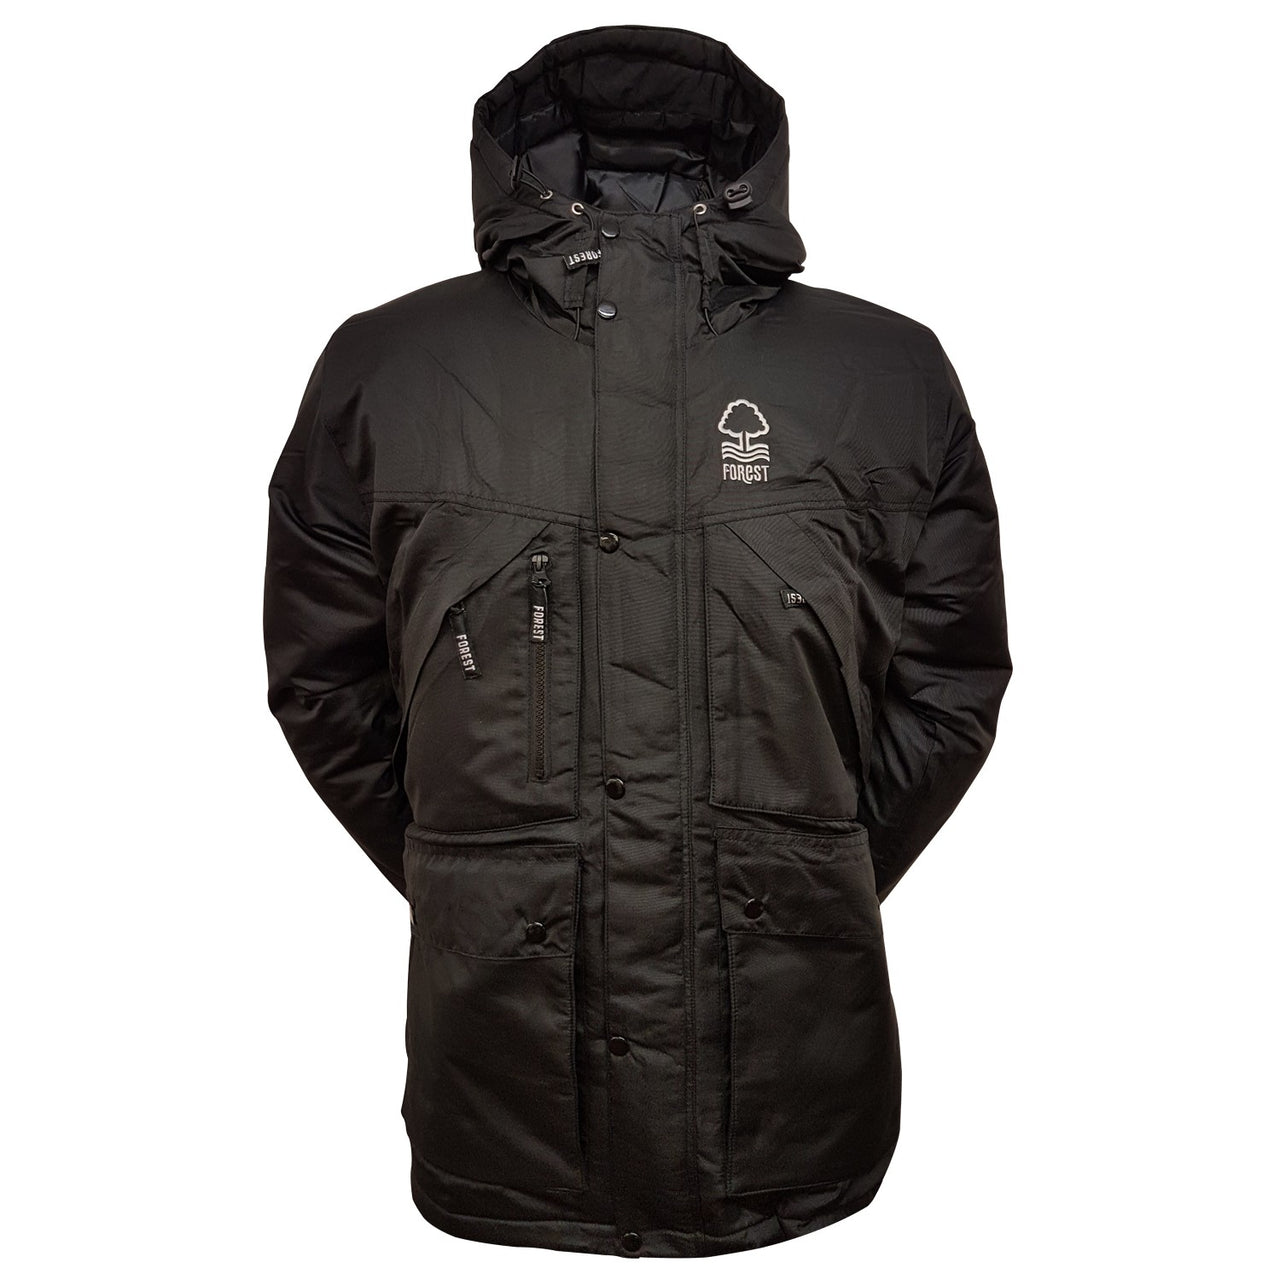 NFFC Junior Black Parka Jacket